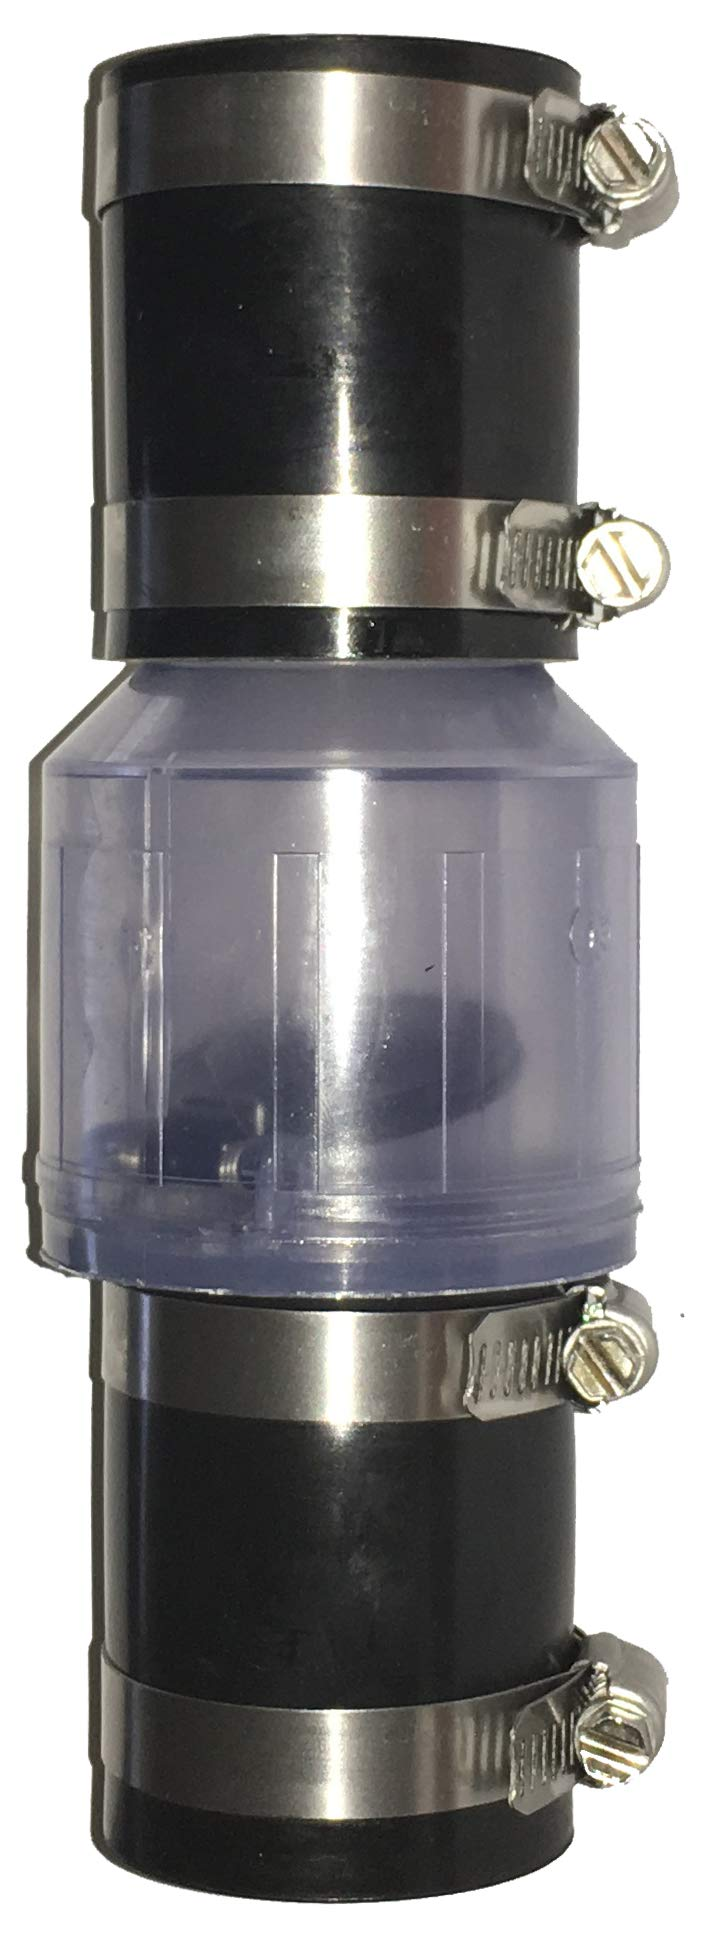 Raybend,''Silent'' Sump Pump Check Valve, 1-1/2'' by Raybend